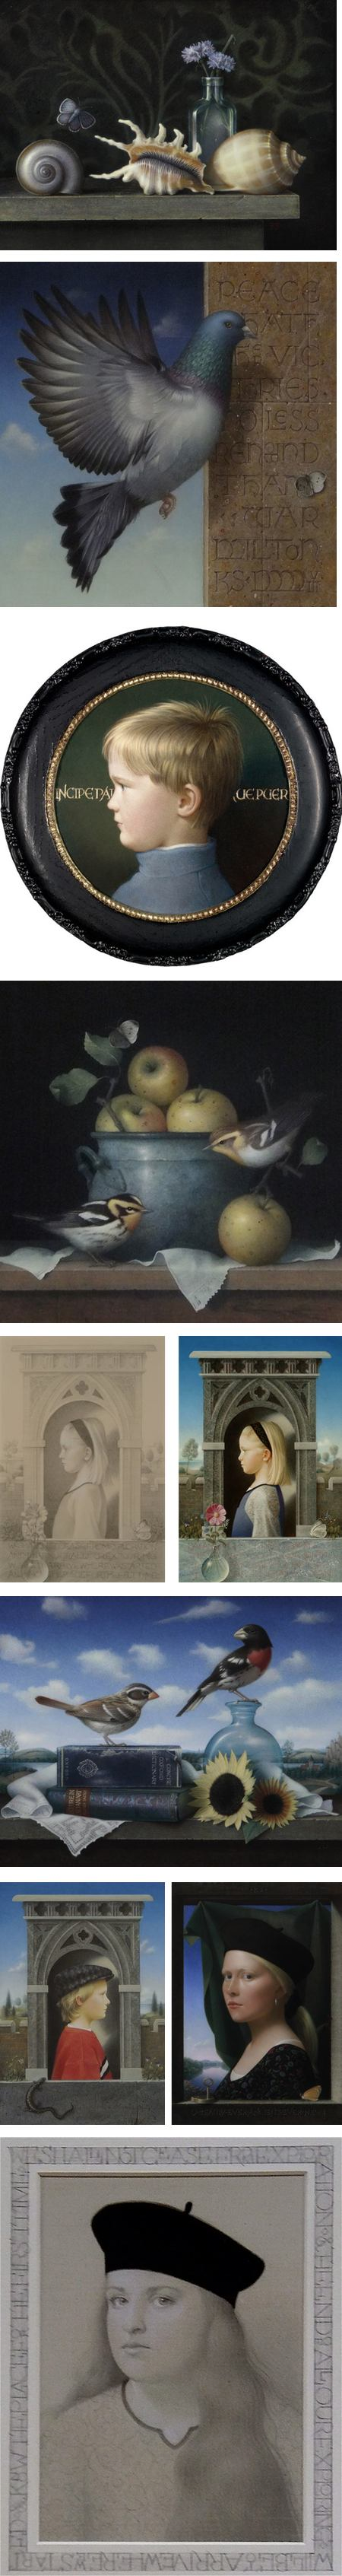 Koo Schadler, egg tempera painting and silverpoint drawing